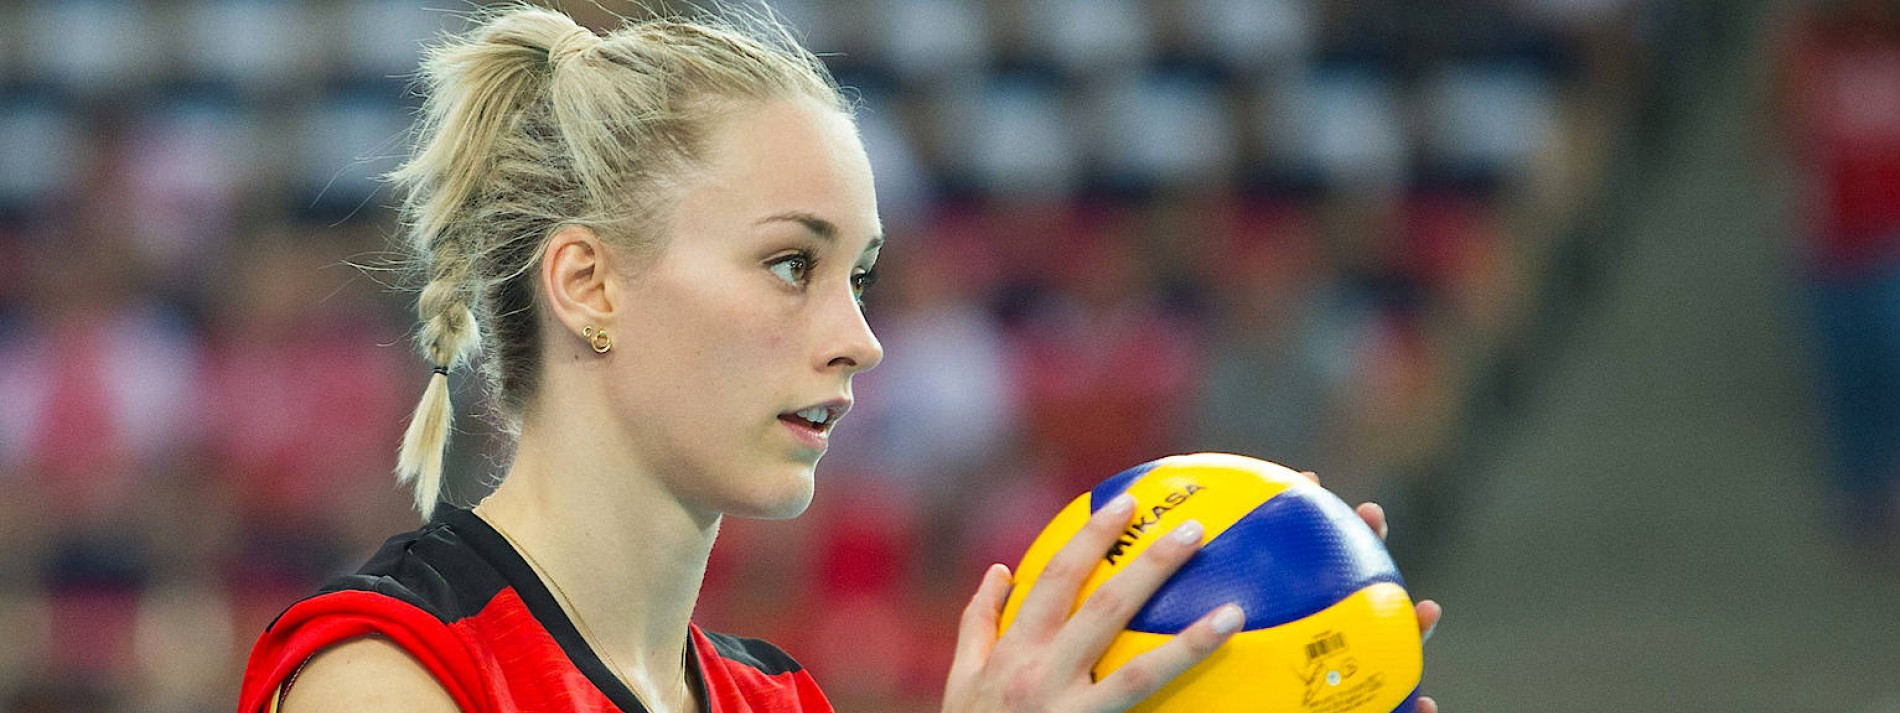 Ein Global Player am Volleyball-Netz